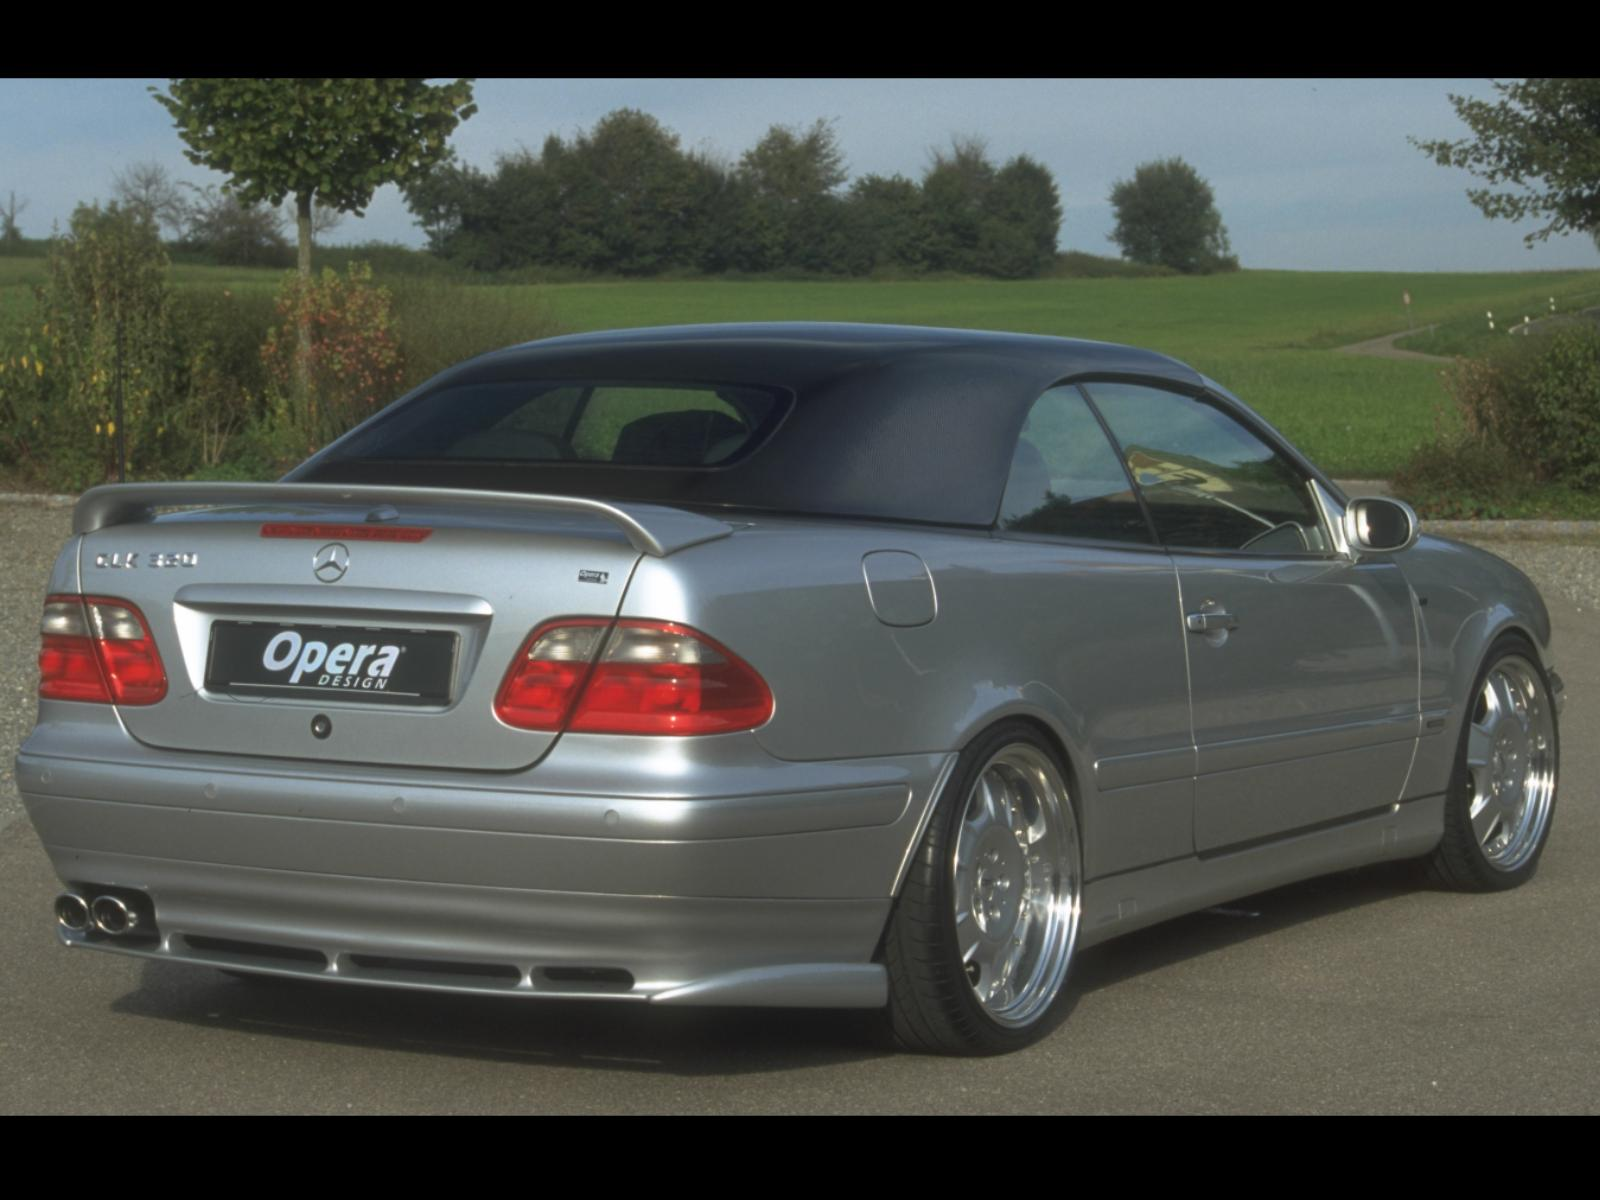 Opera Design CLK 320 photo 13974